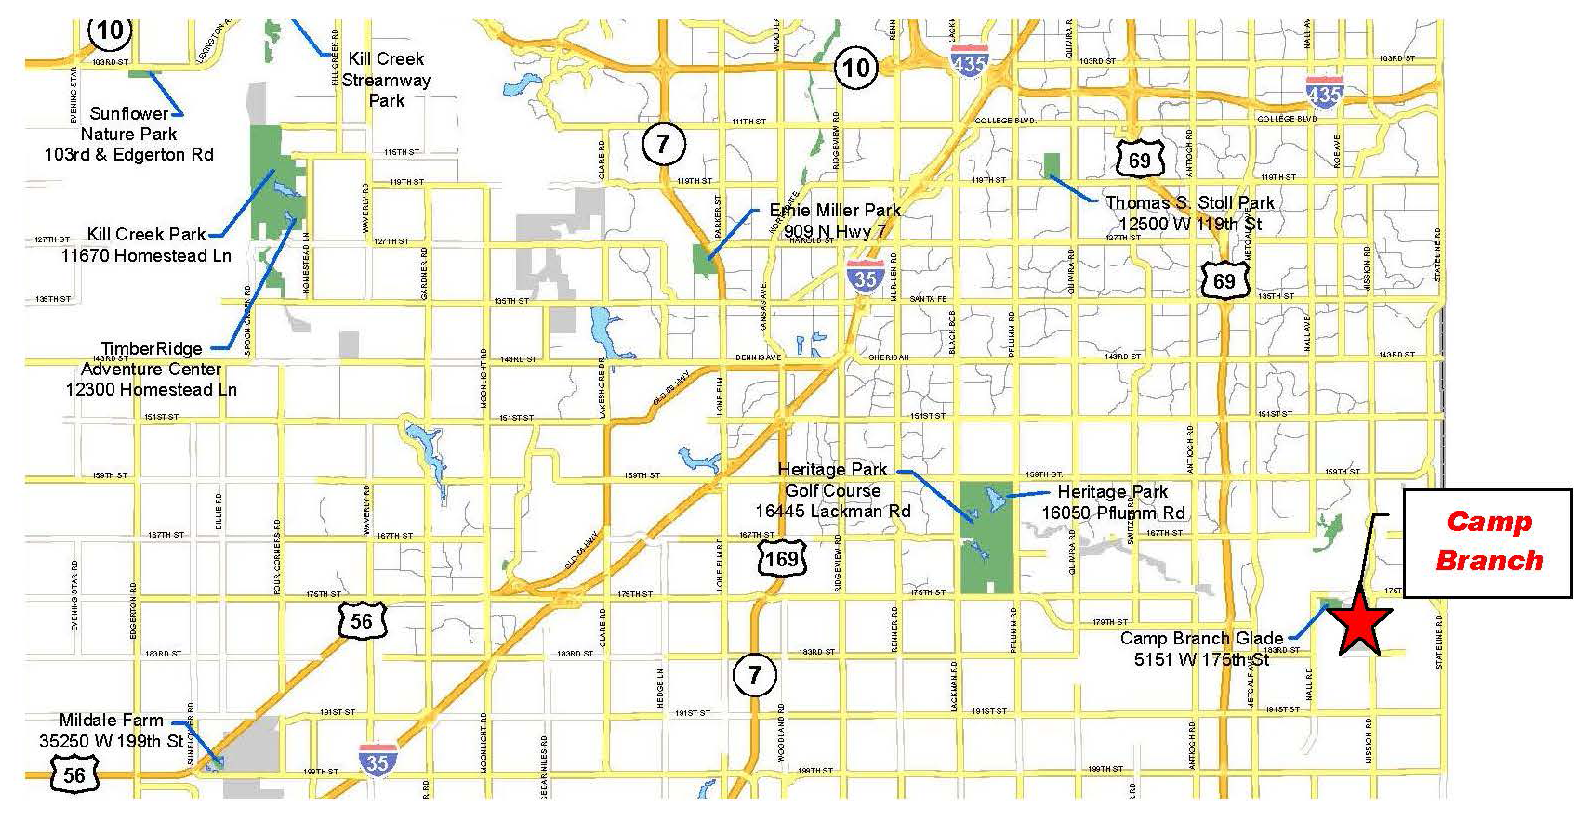 Map of JCPRD Parks located between I-435 and 199th Street